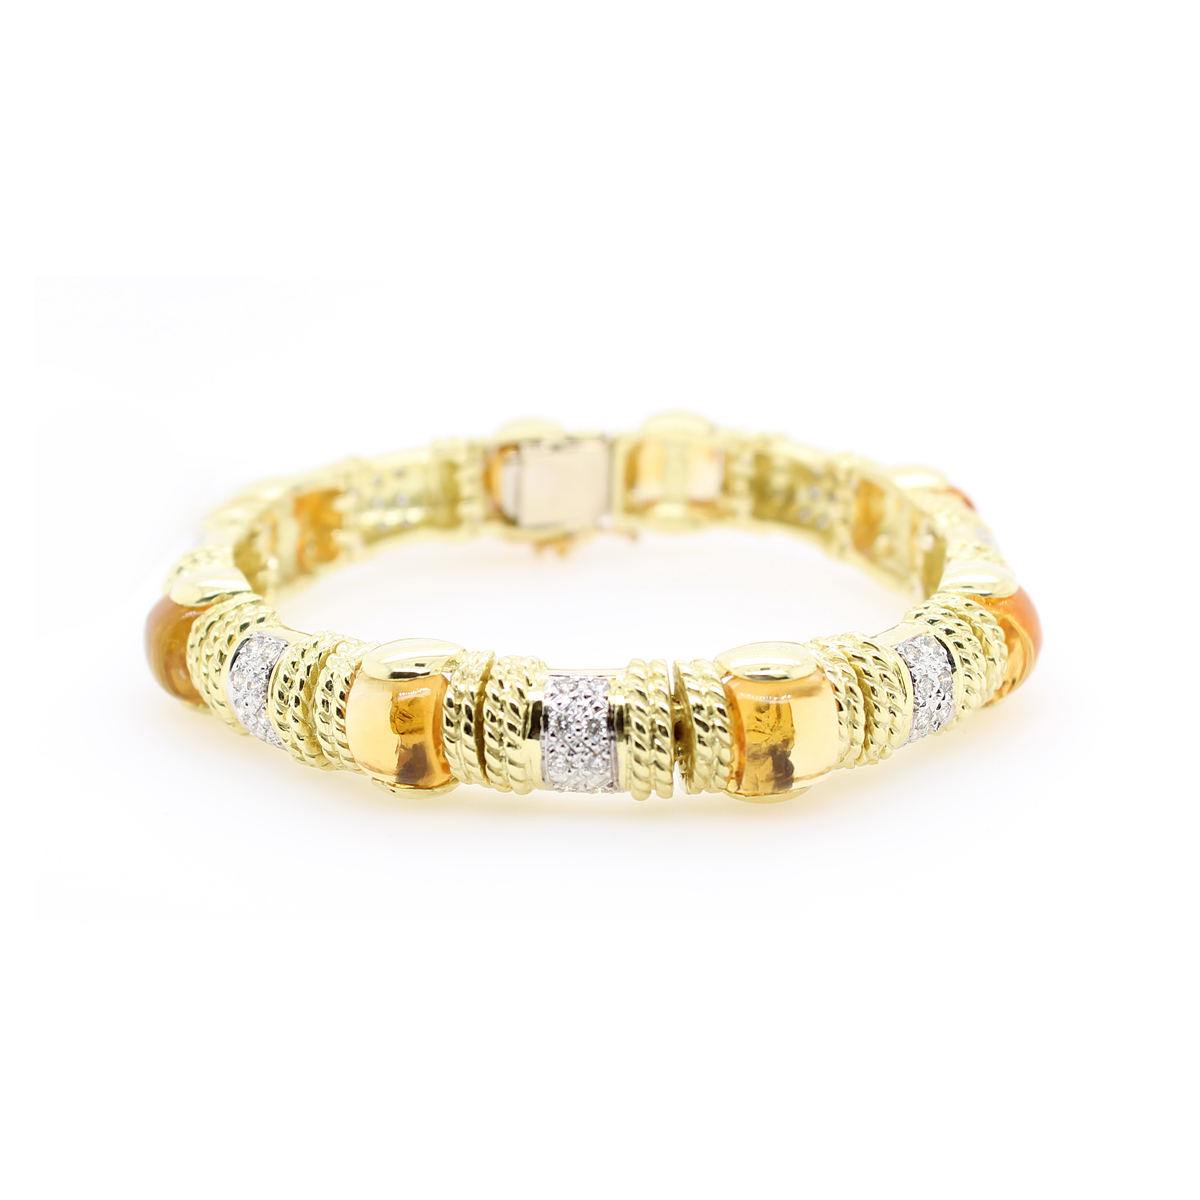 18 Karat Yellow Gold Cabochon Citrine and Diamond Bangle Bracelet